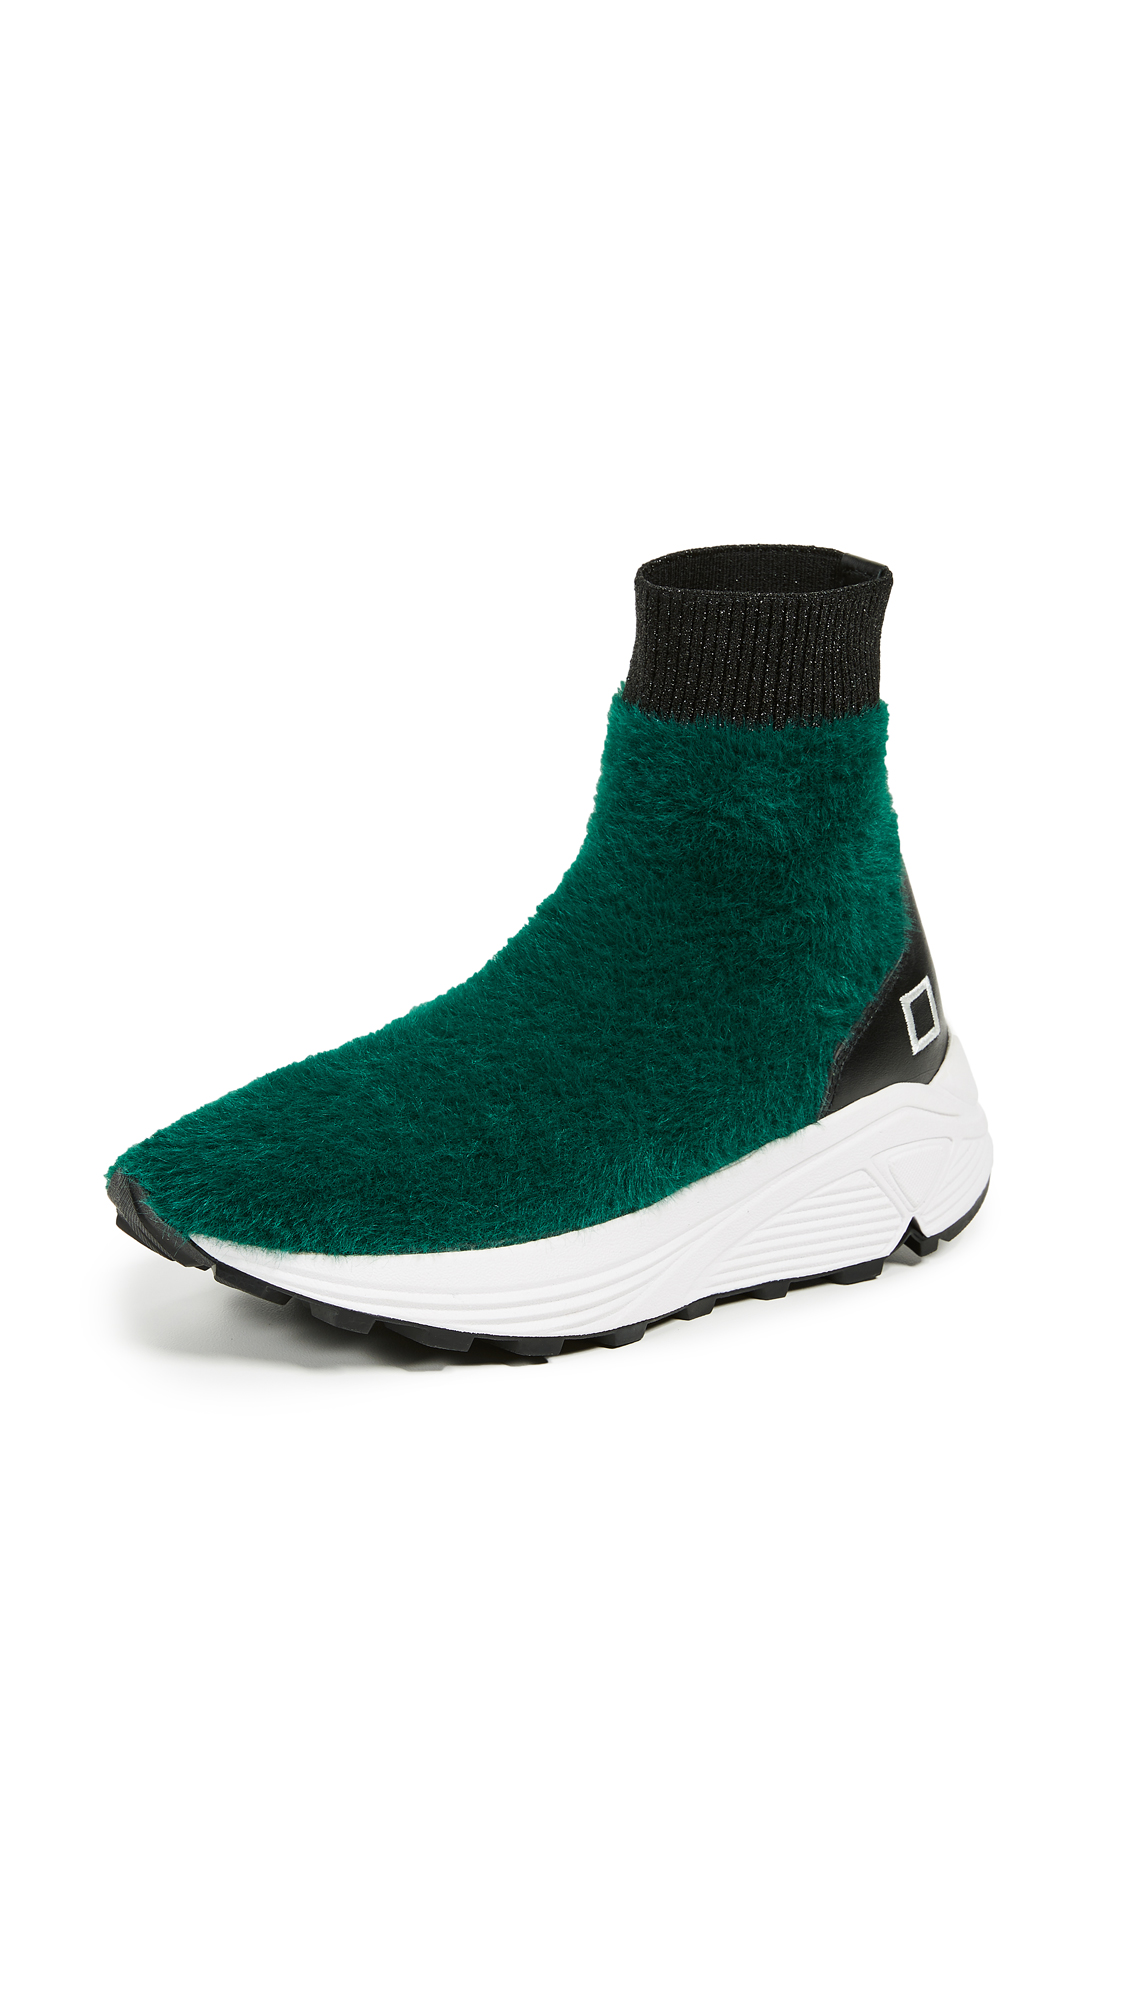 D.A.T.E. Dafne Fur Sneakers - Green